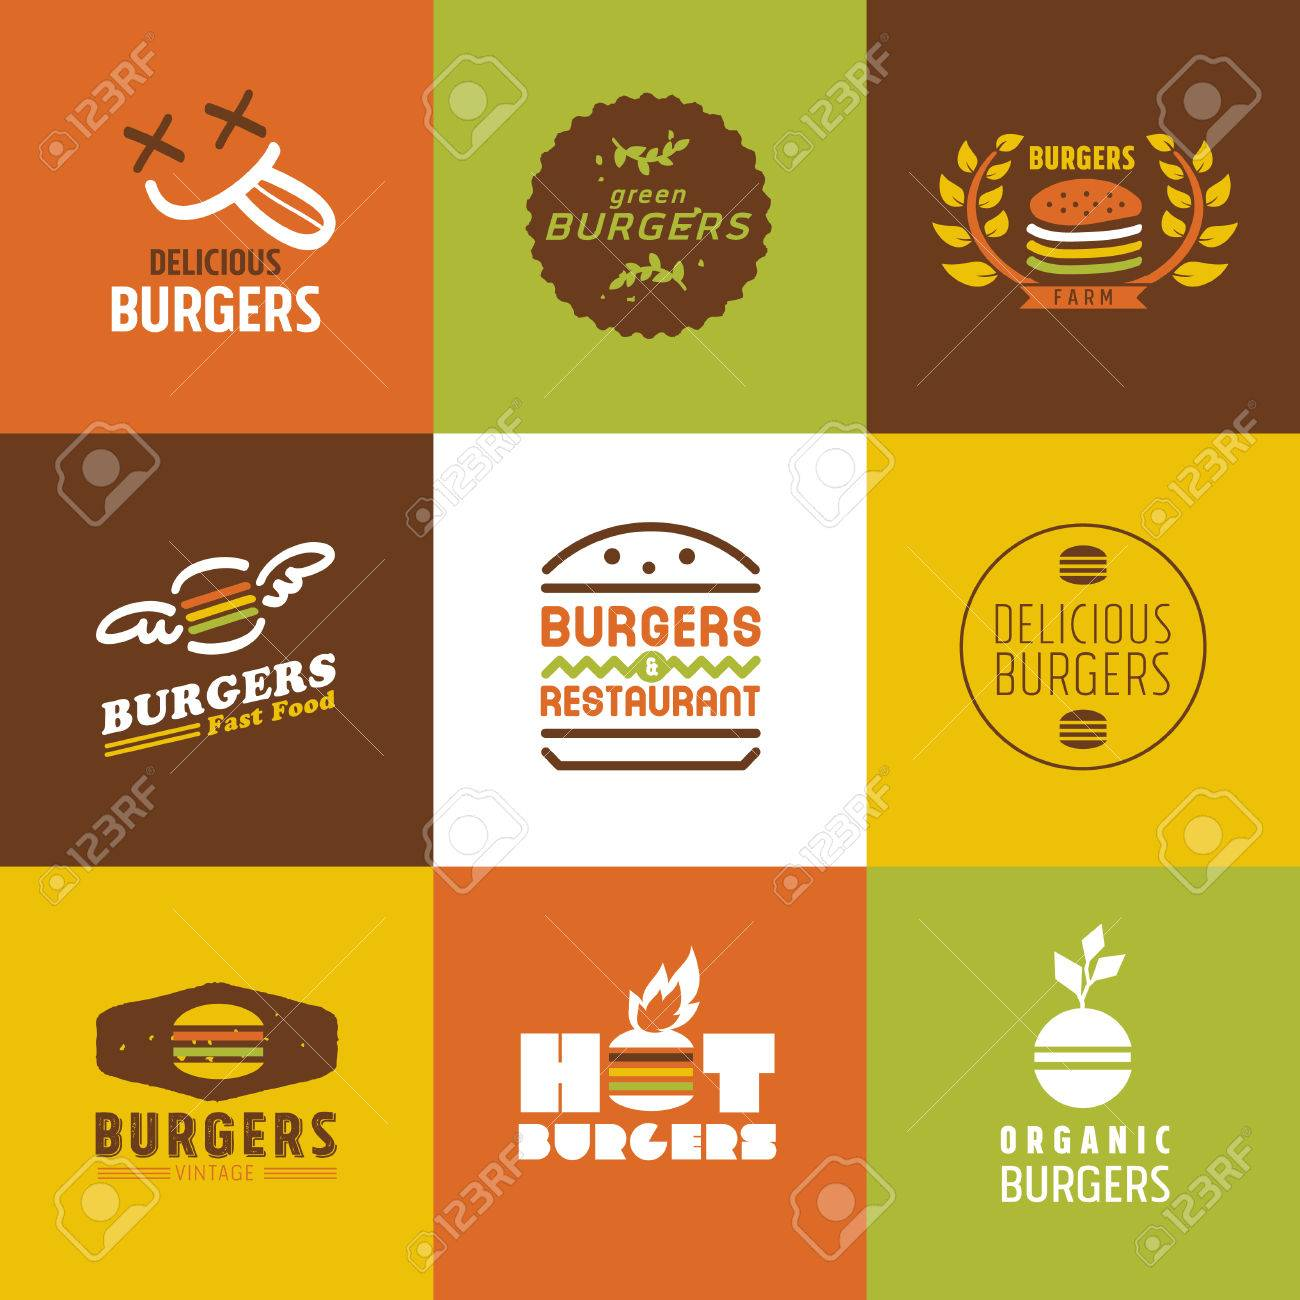 For restaurant pictures graphics illustrations clipart photos - Fast Food Restaurant Vector Logos And Icons Set Graphic Design Editable For Your Design Stock